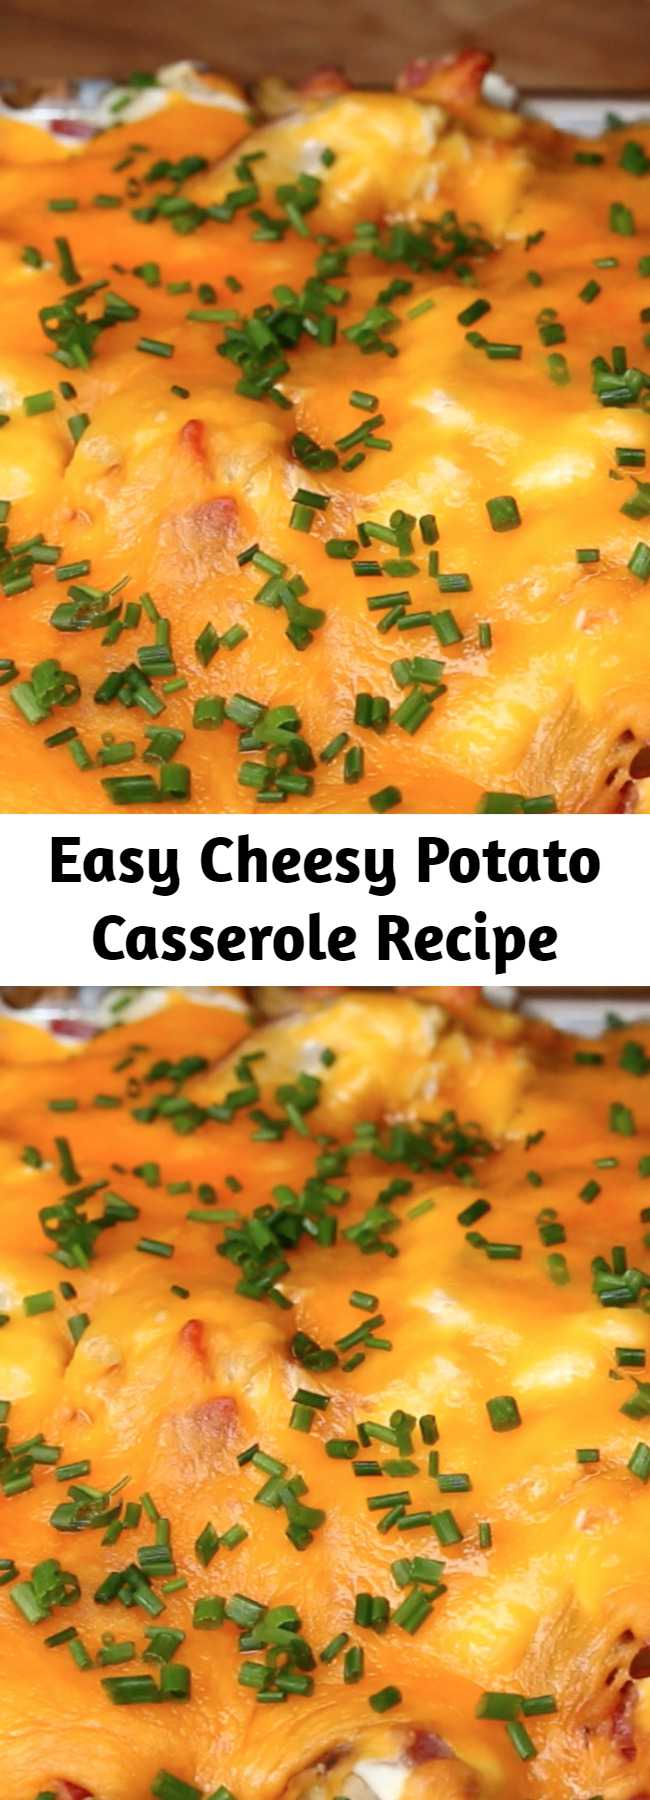 Easy Cheesy Potato Casserole Recipe - This cheesy potato casserole is the perfect way to feed a family of picky eaters. With all of the components of beloved loaded potato skins (like bacon, sour cream, and cheese), it's practically impossible for anyone to dislike this casserole. It's make-ahead friendly, filling, and easily made vegetarian by omitting the bacon. If you're looking for the ultimate weeknight casserole, this is your recipe.